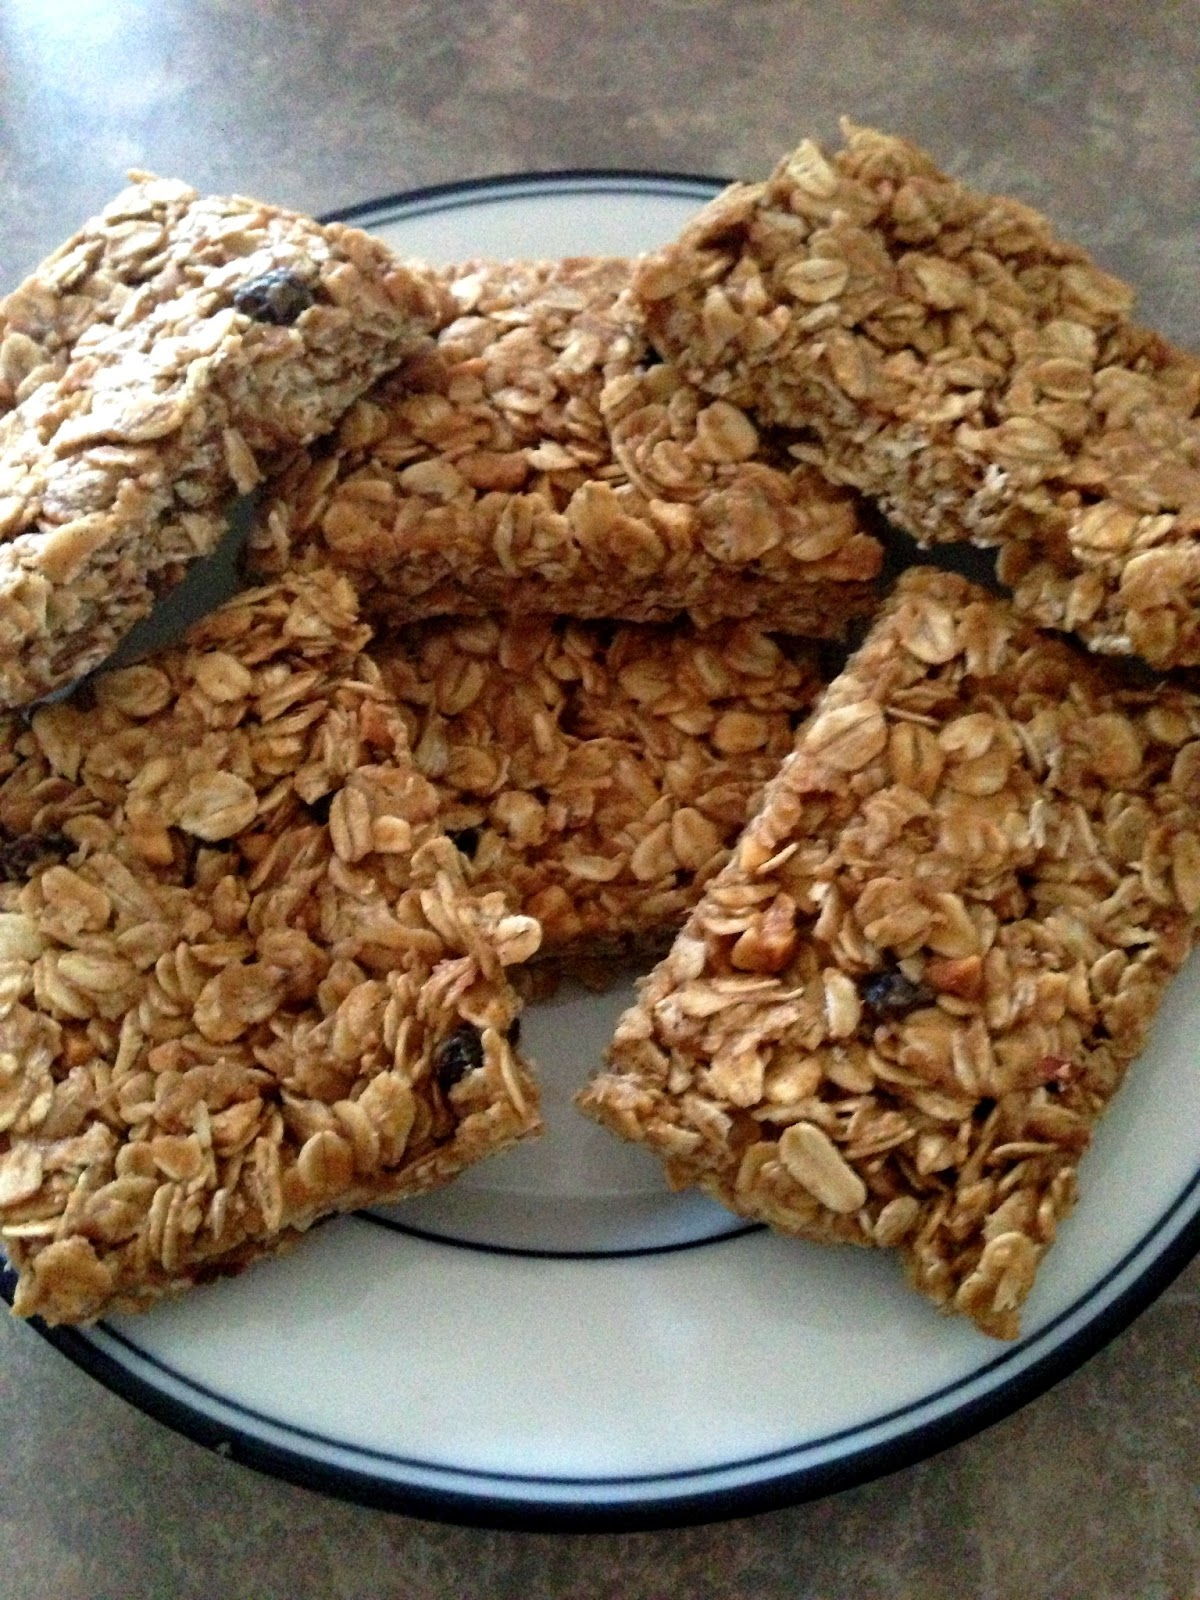 Savory Sweet and Satisfying: Peanut Butter Granola Bars